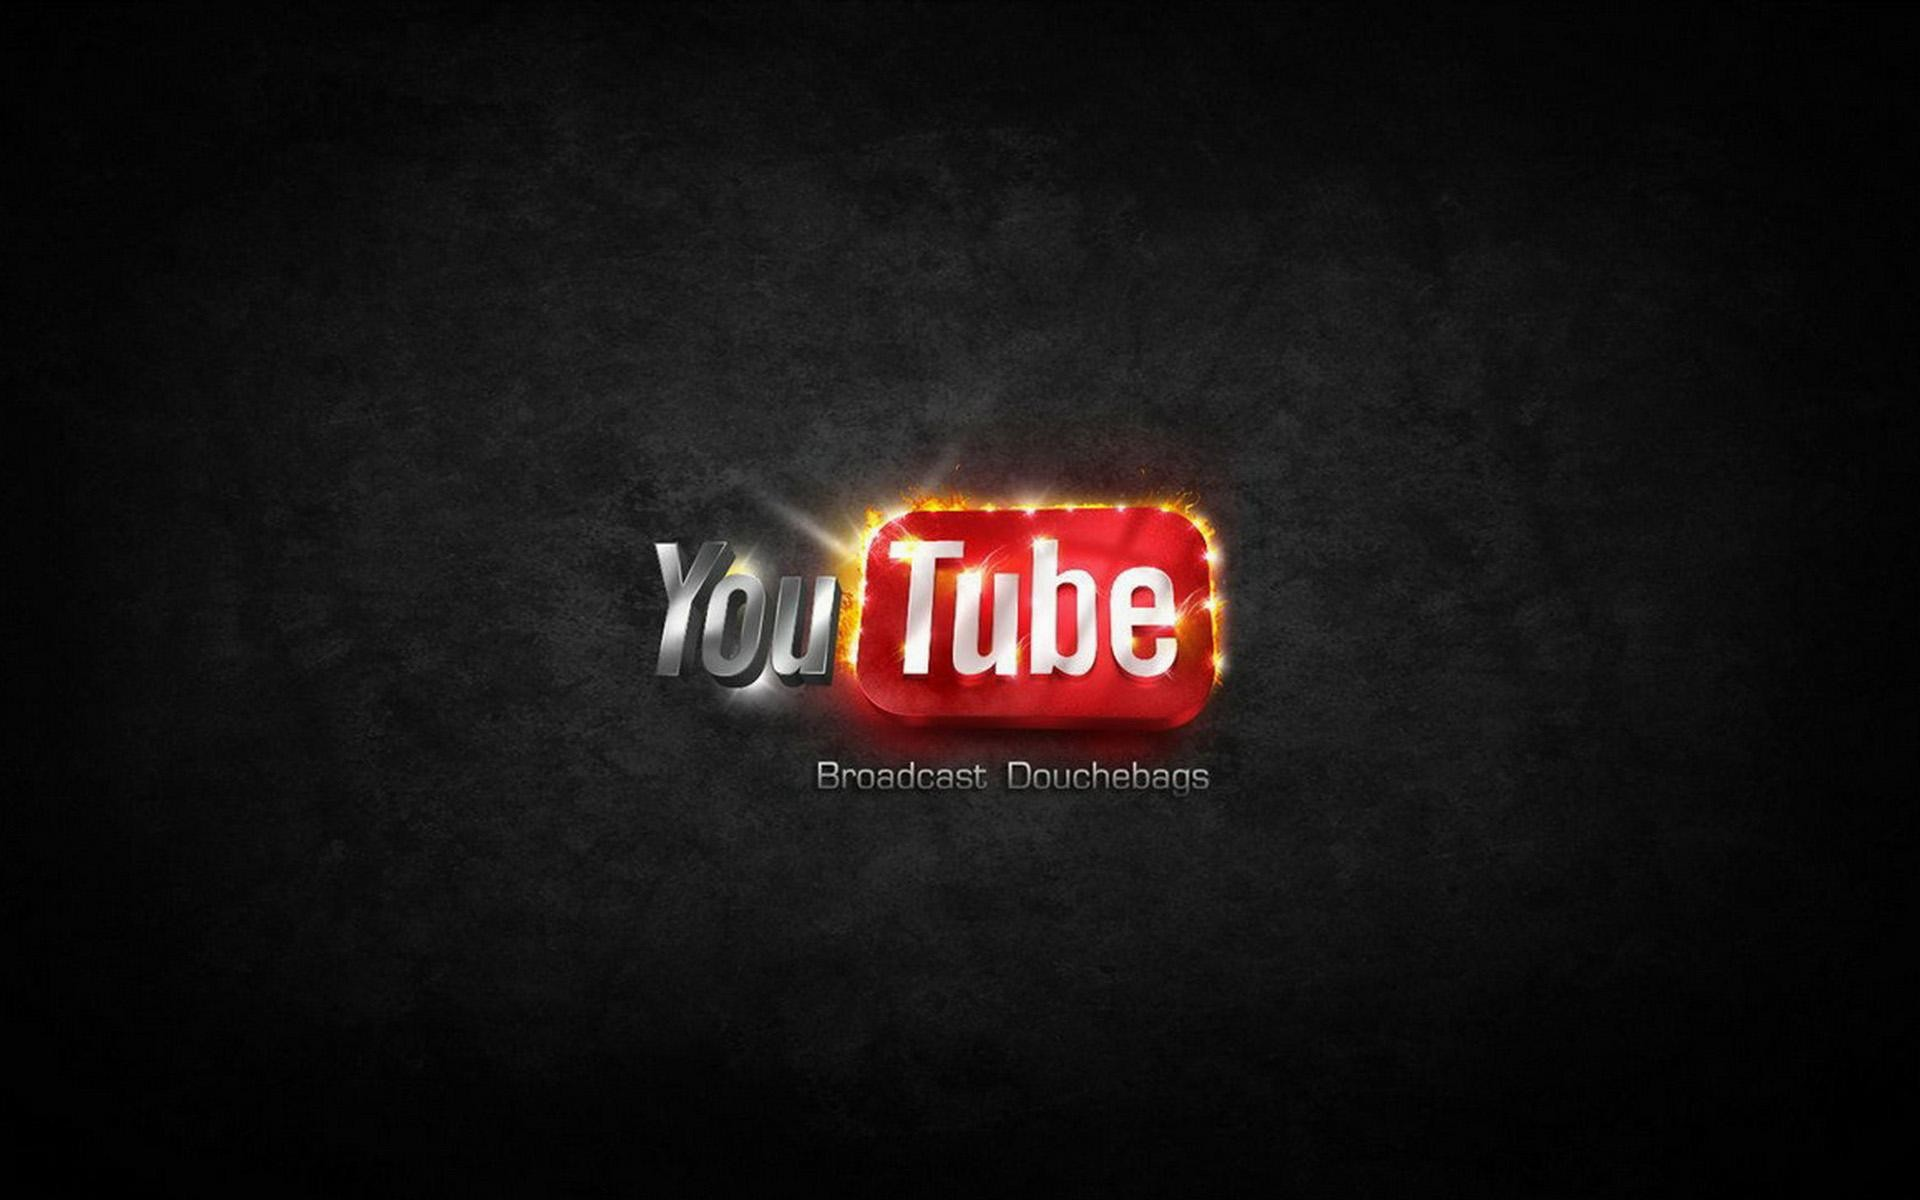 Youtube-Backgrounds-Free-Download